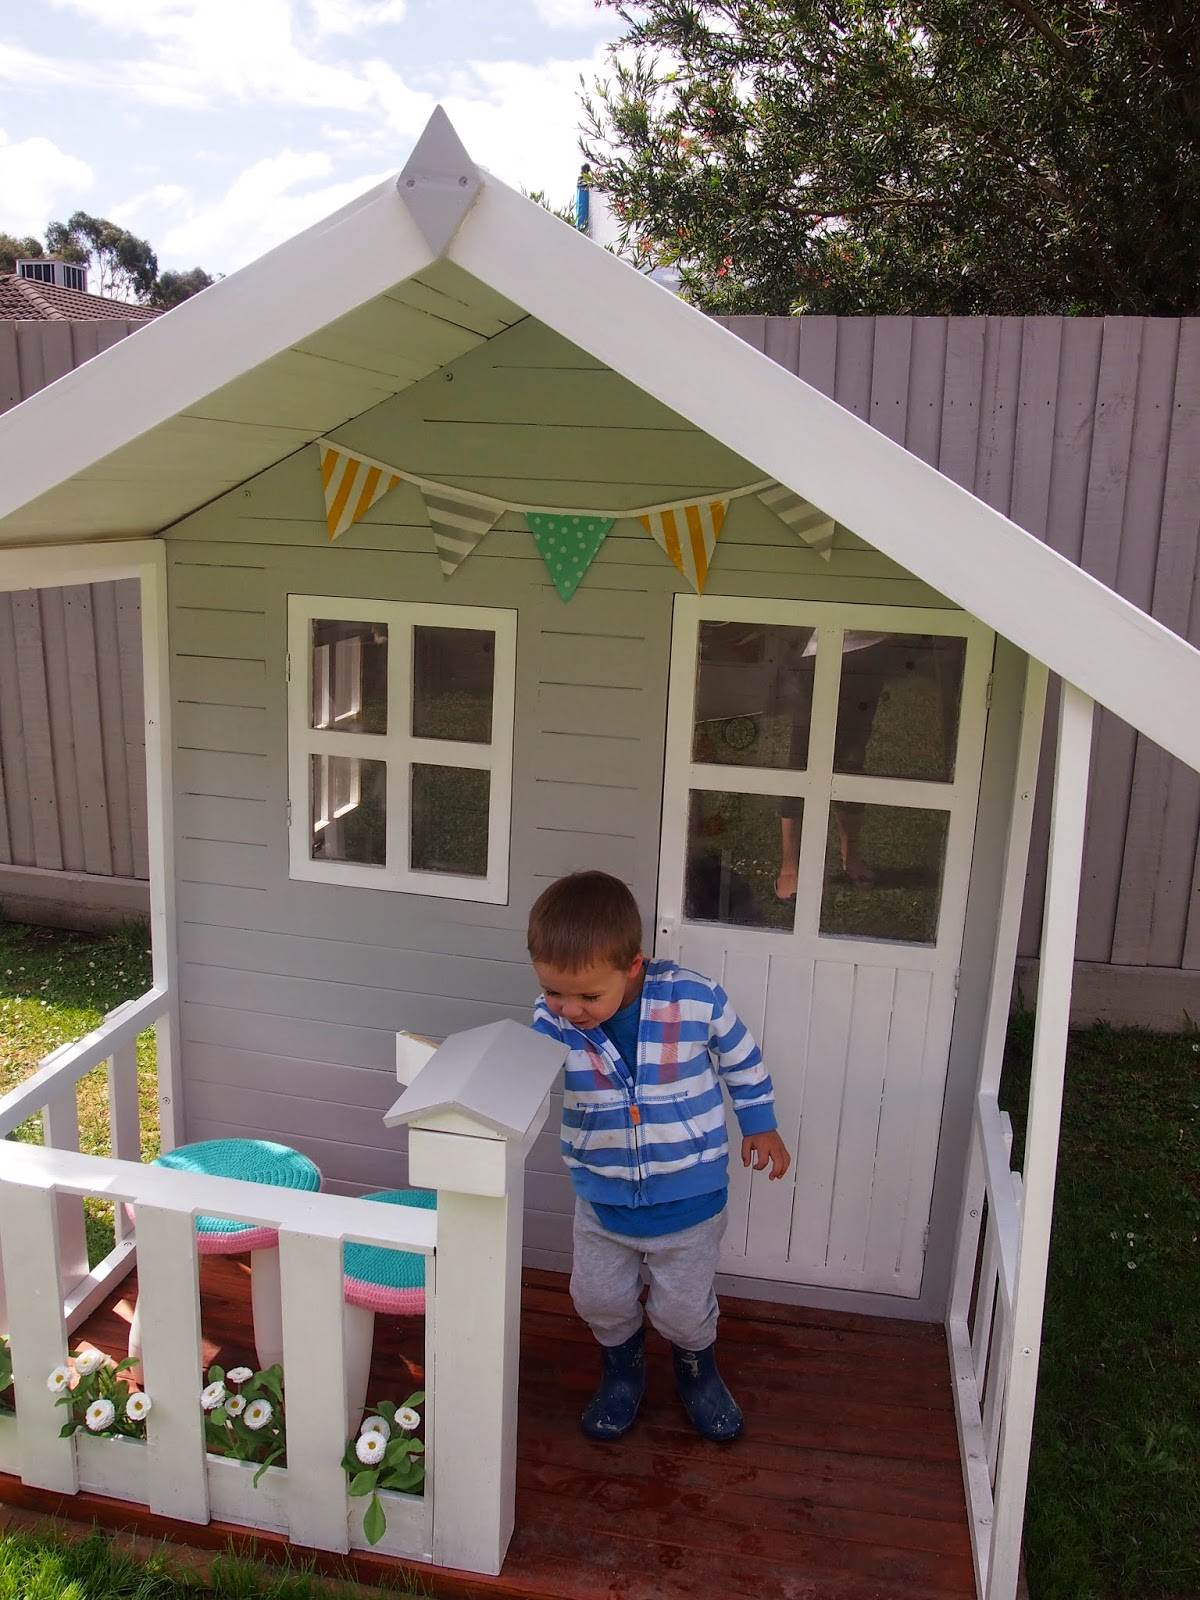 utterly organised project cubby house the finished product our